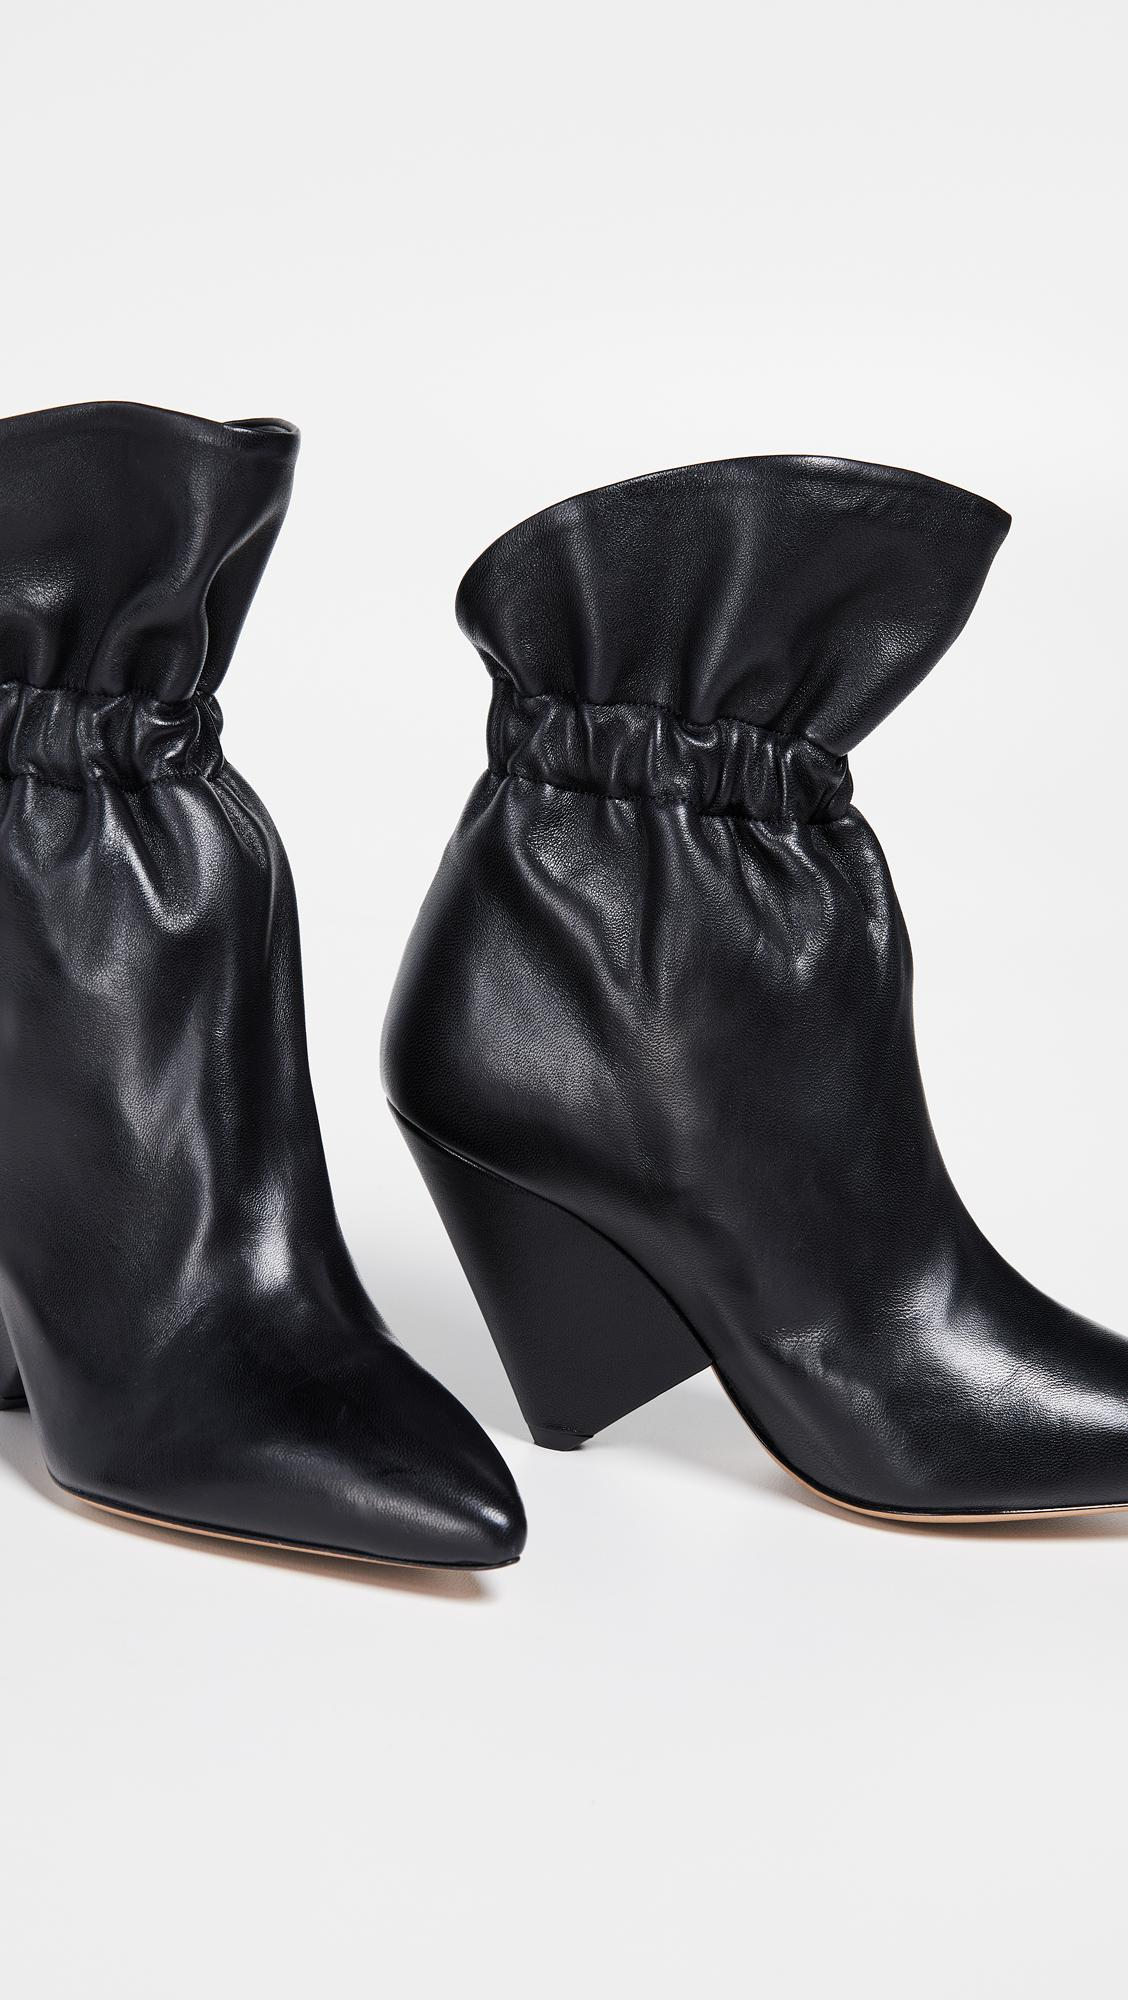 Isabel Marant Leather Lileas Boots in Black